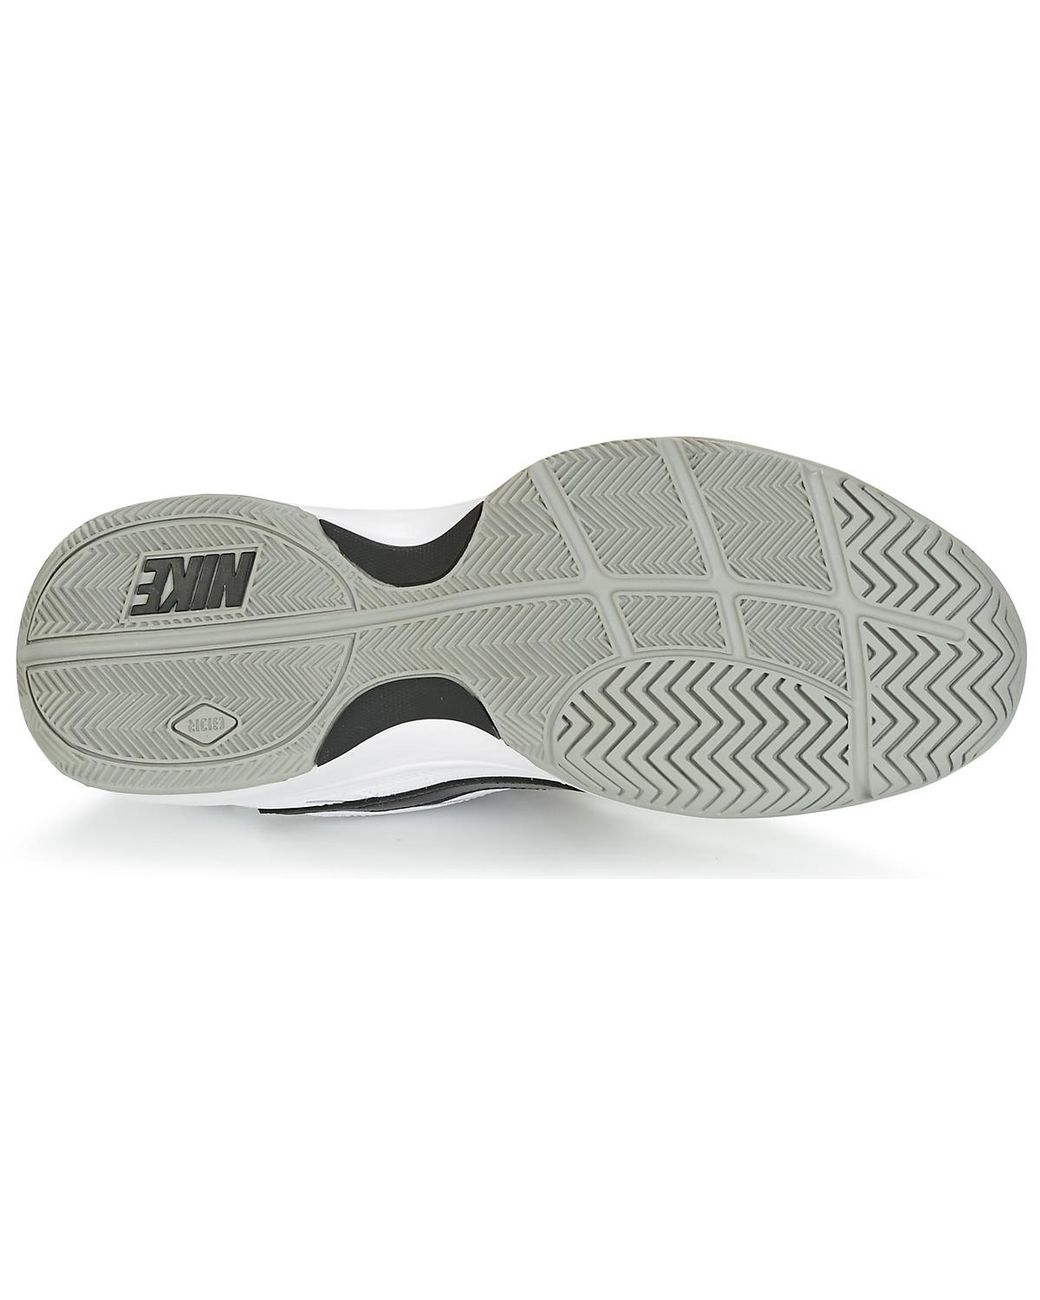 318b11a970a19 Nike Court Lite Tennis Trainers (shoes) in White for Men - Save 7% - Lyst